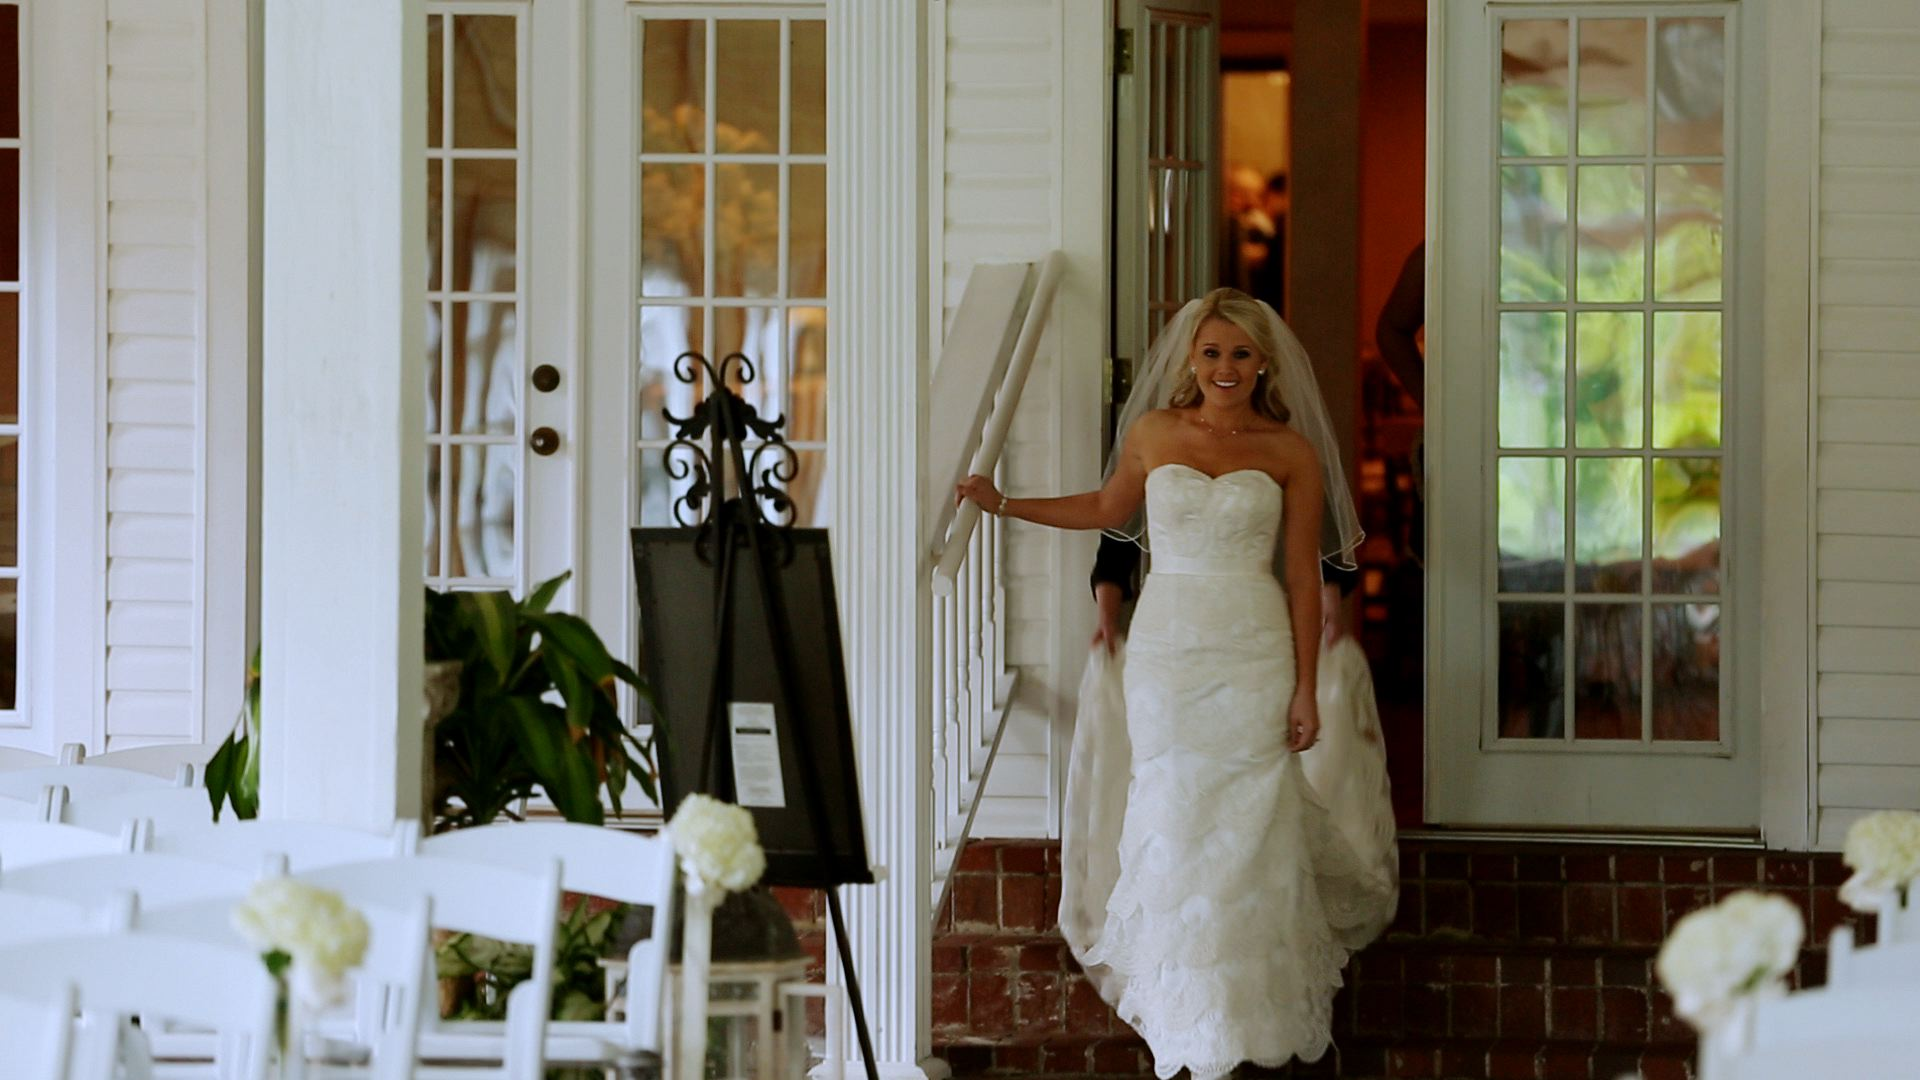 ...excited to see her handsome groom.